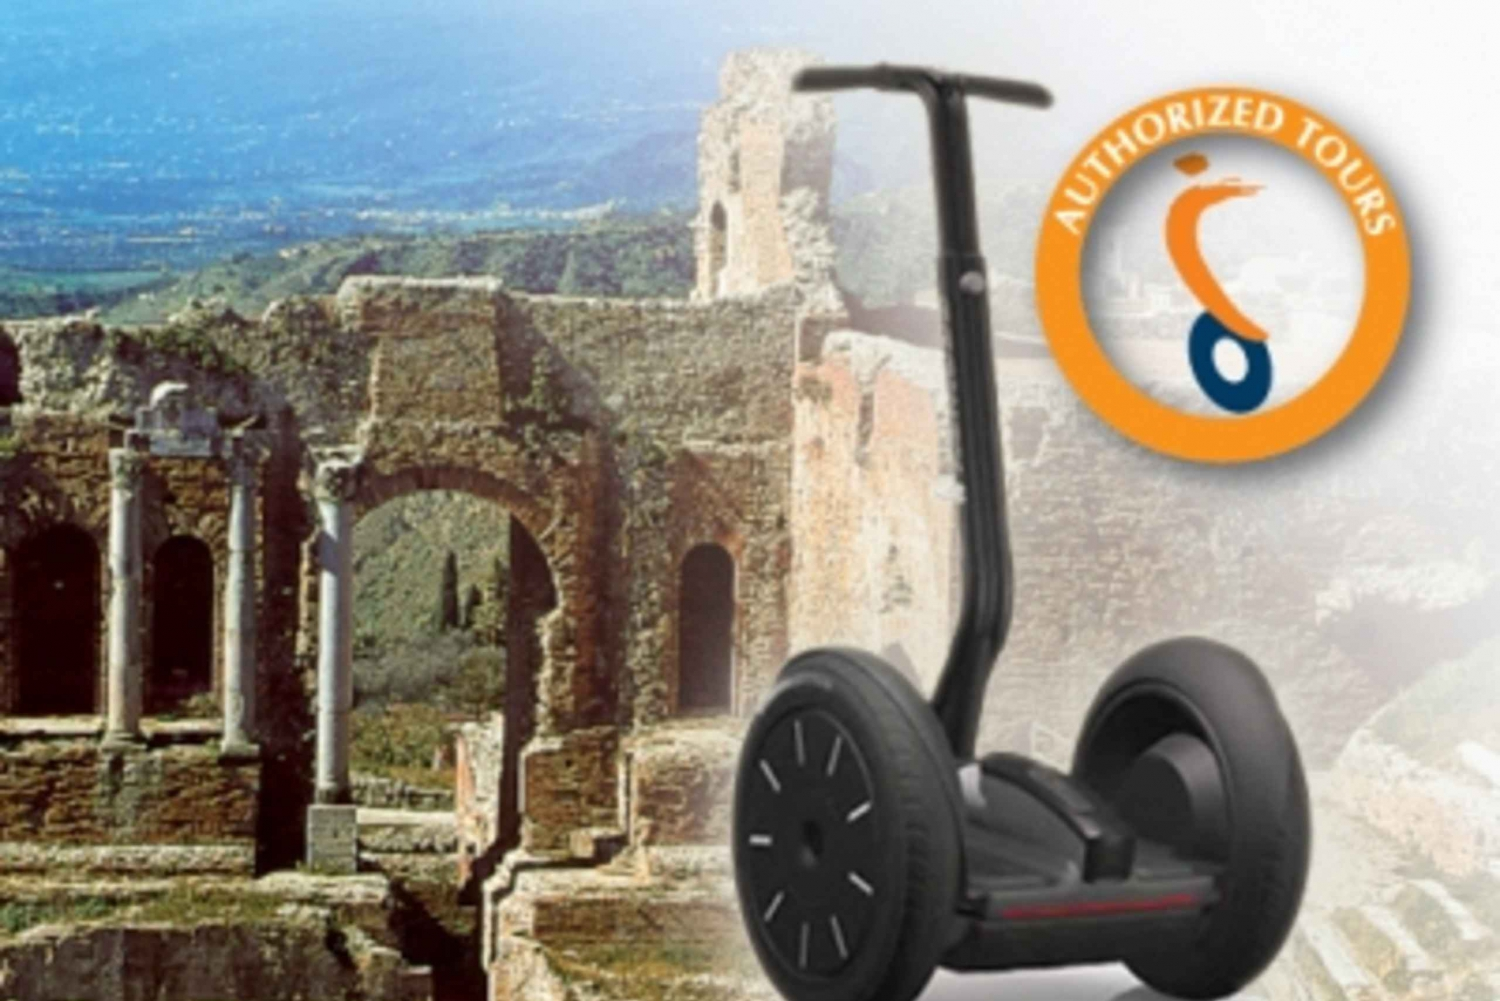 3-Hour Taormina Segway PT Authorized Tour